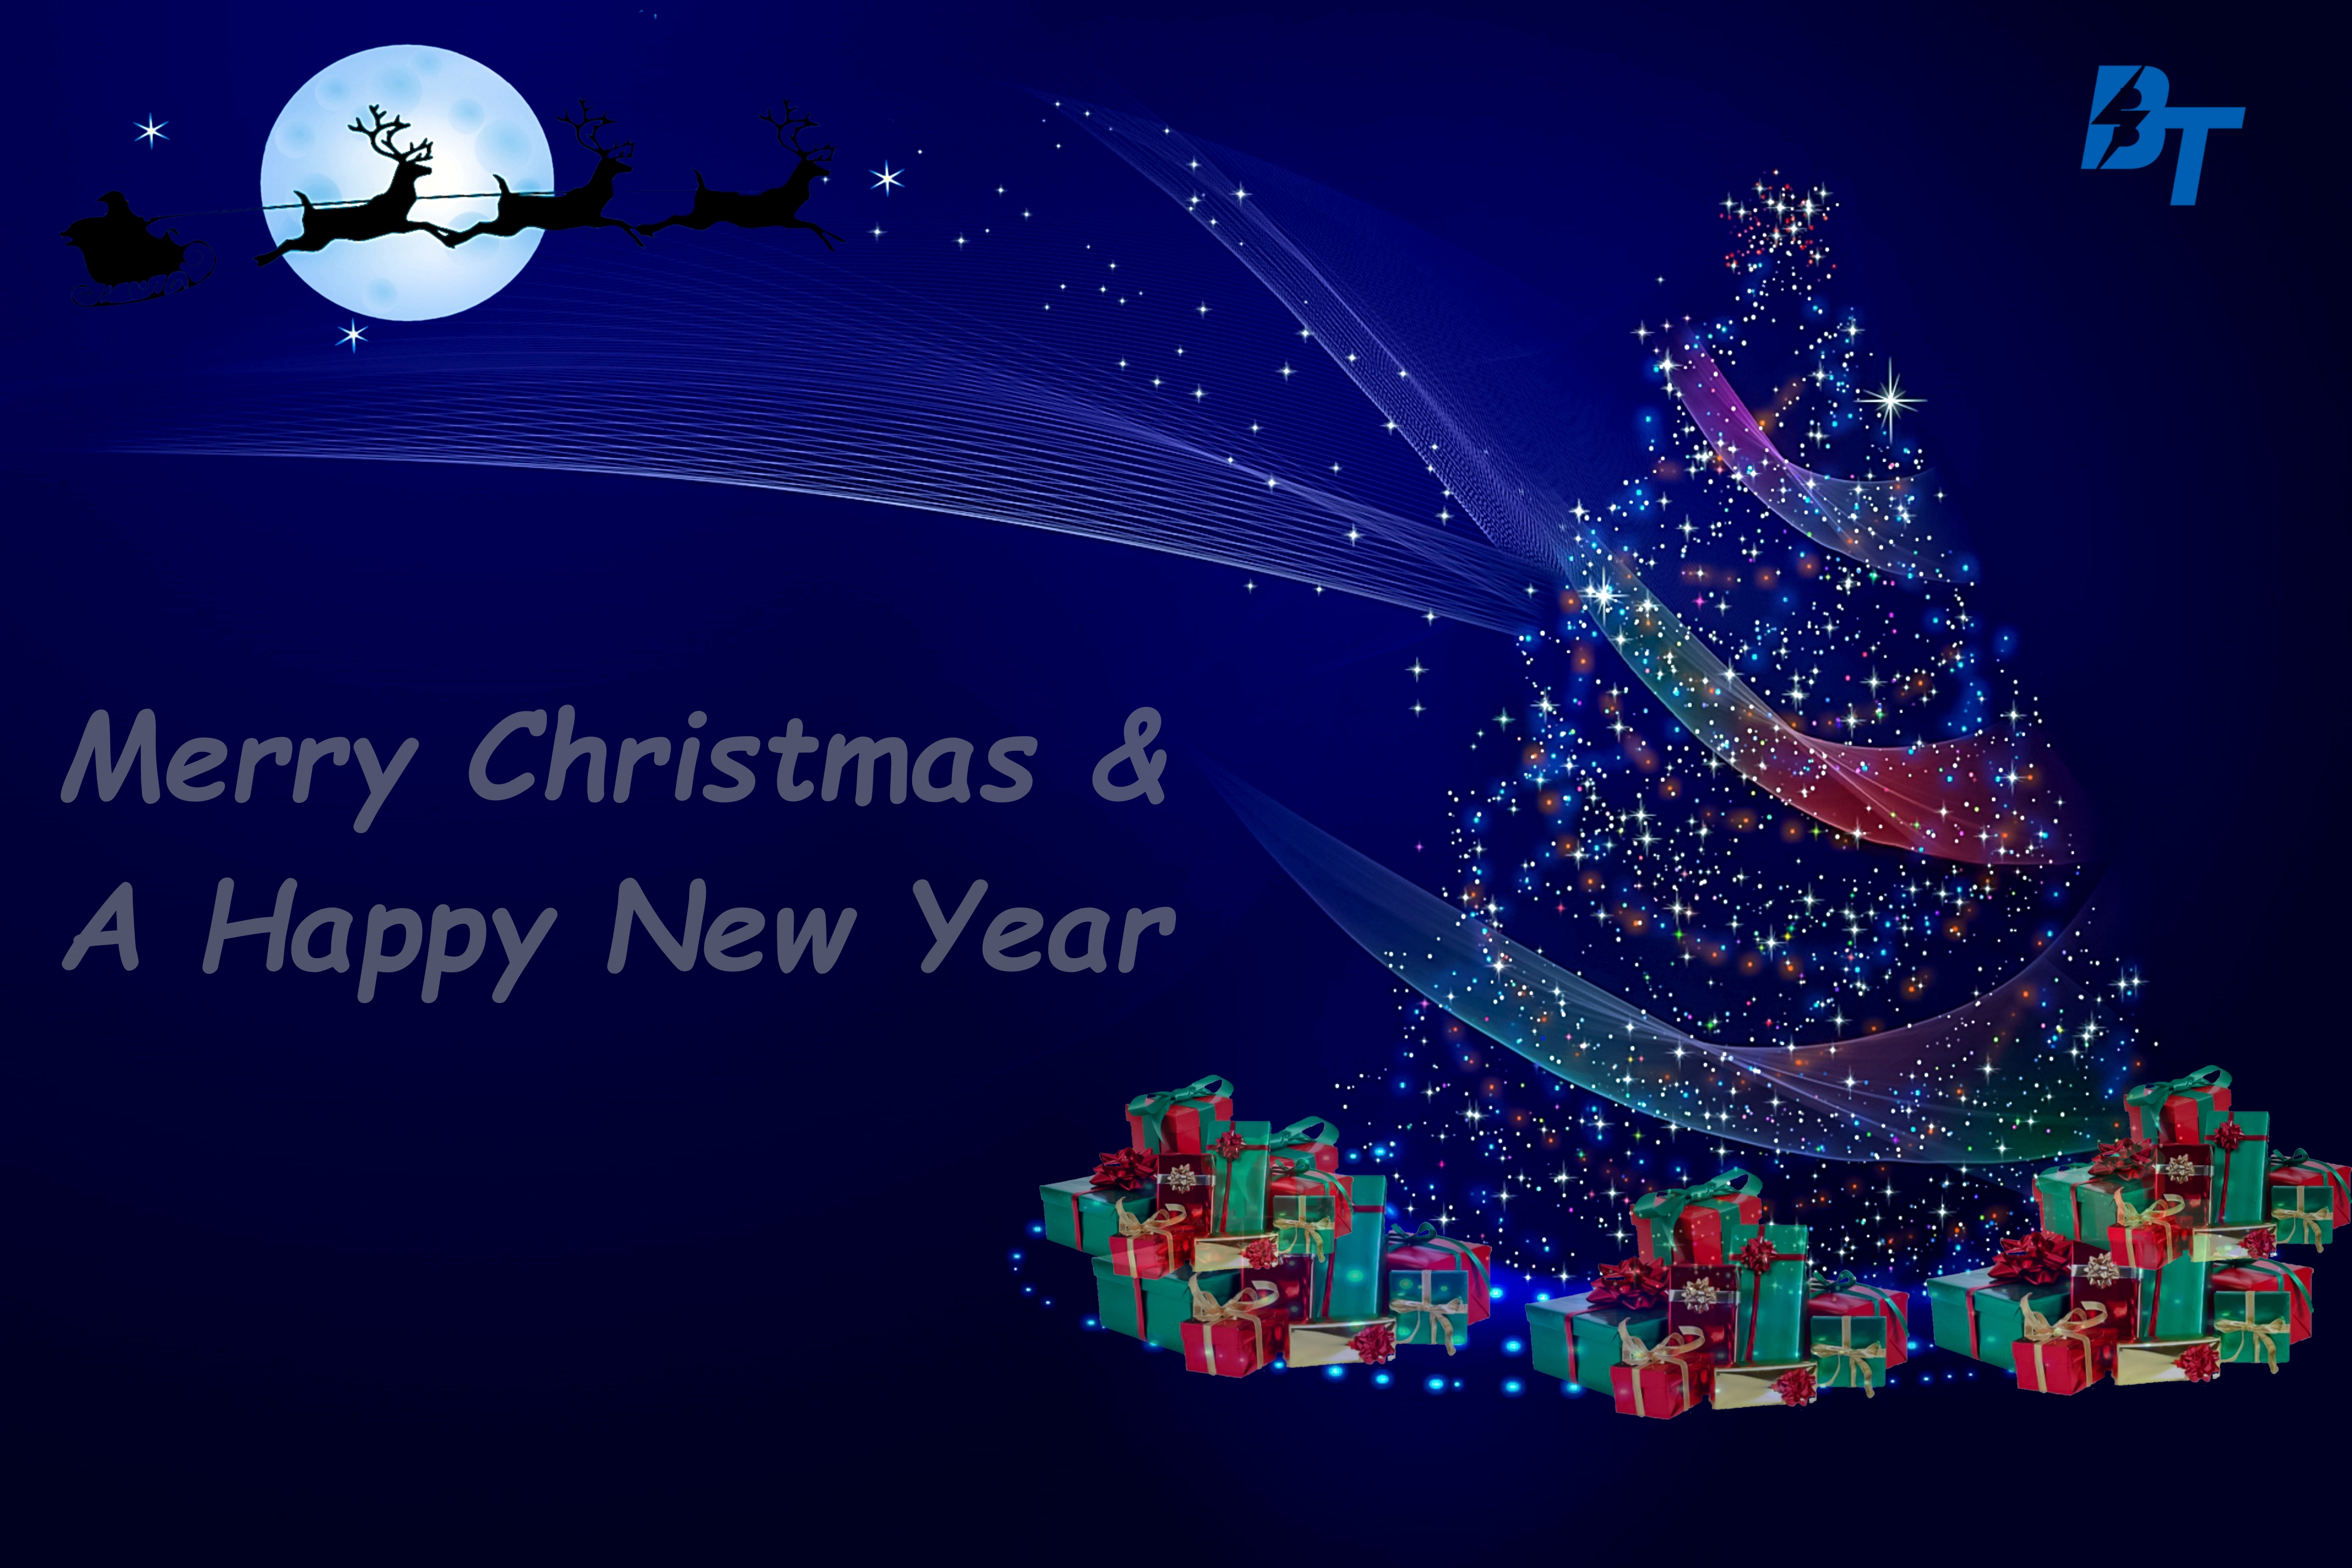 Merry Christmas and a Happy New Year from Bolt Travel